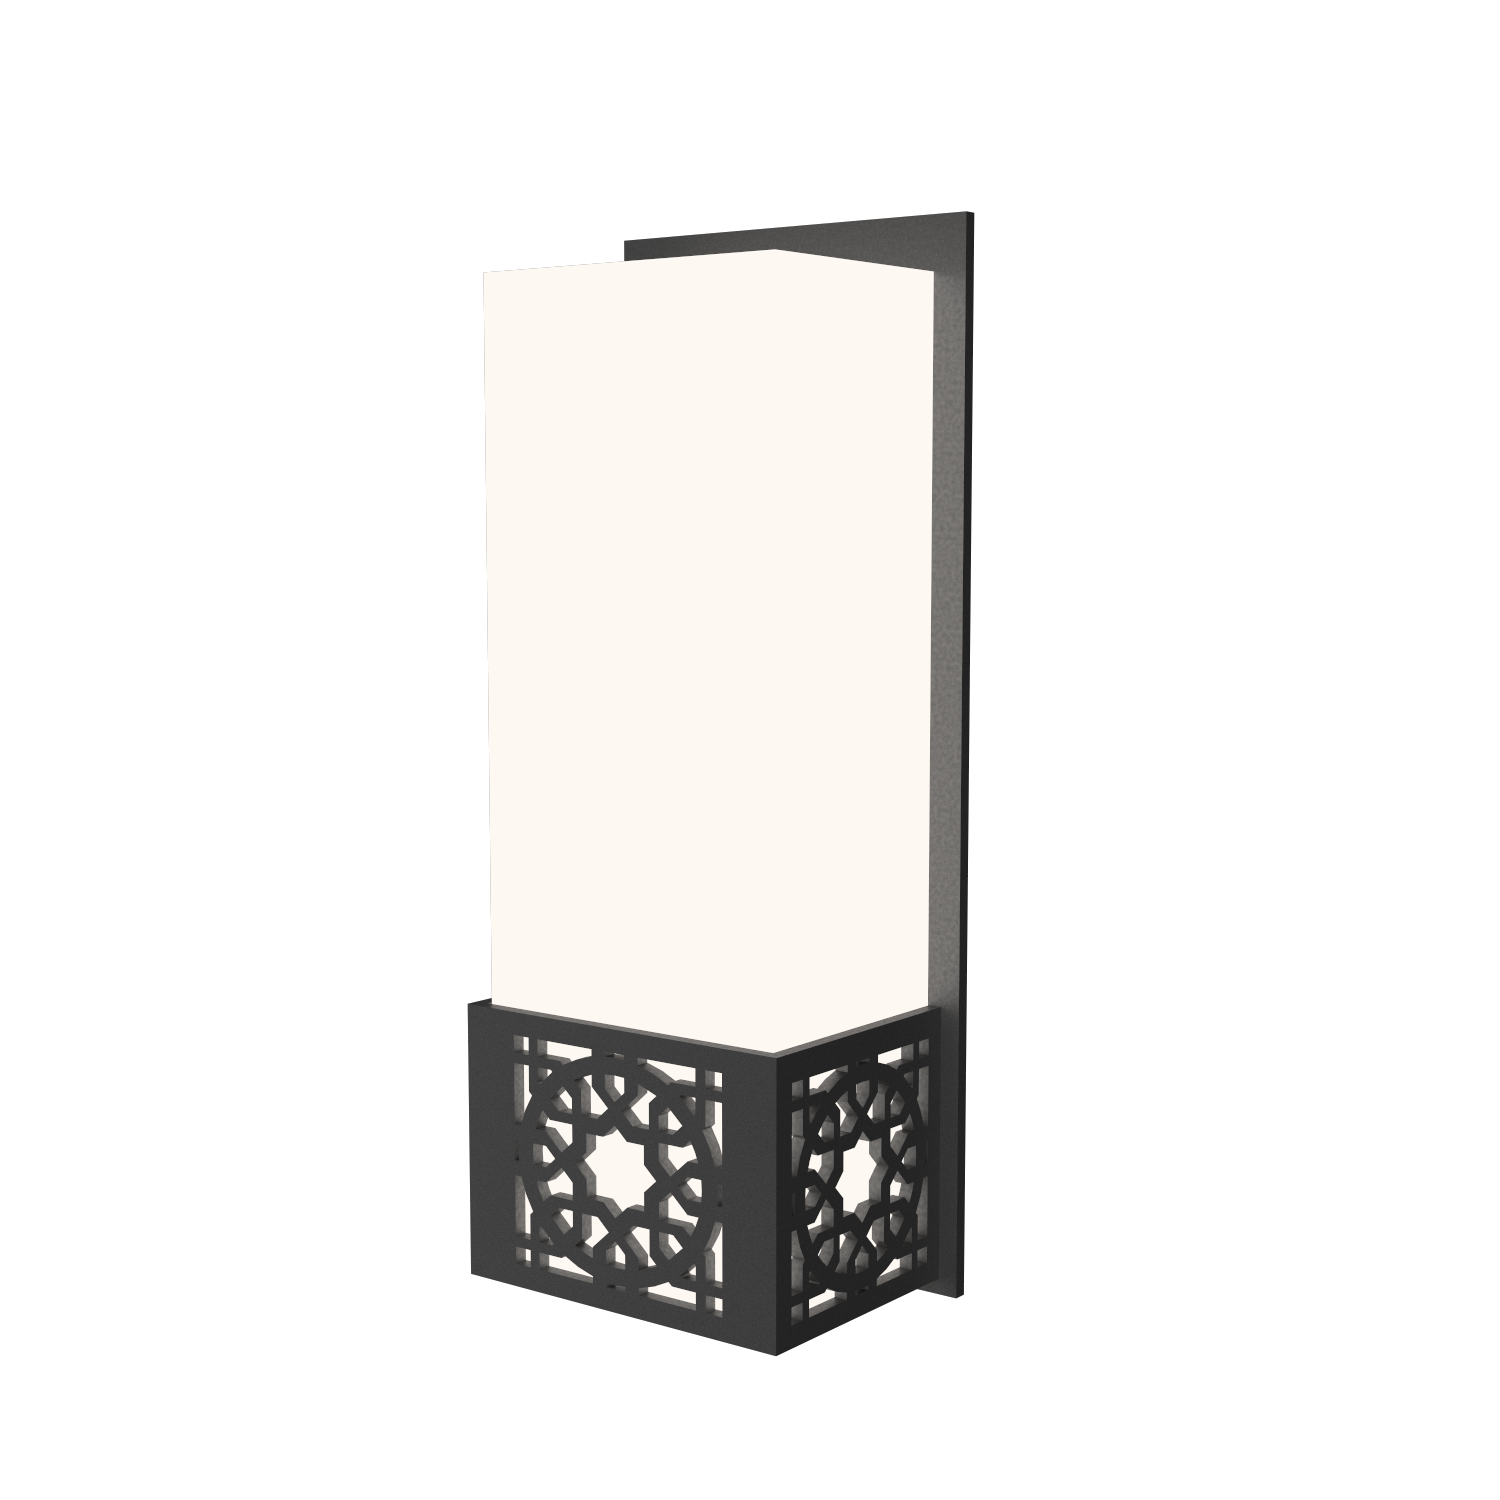 Wall Lamp Accord Patterns 4052 - Patterns Line Accord Lighting | Lead Grey